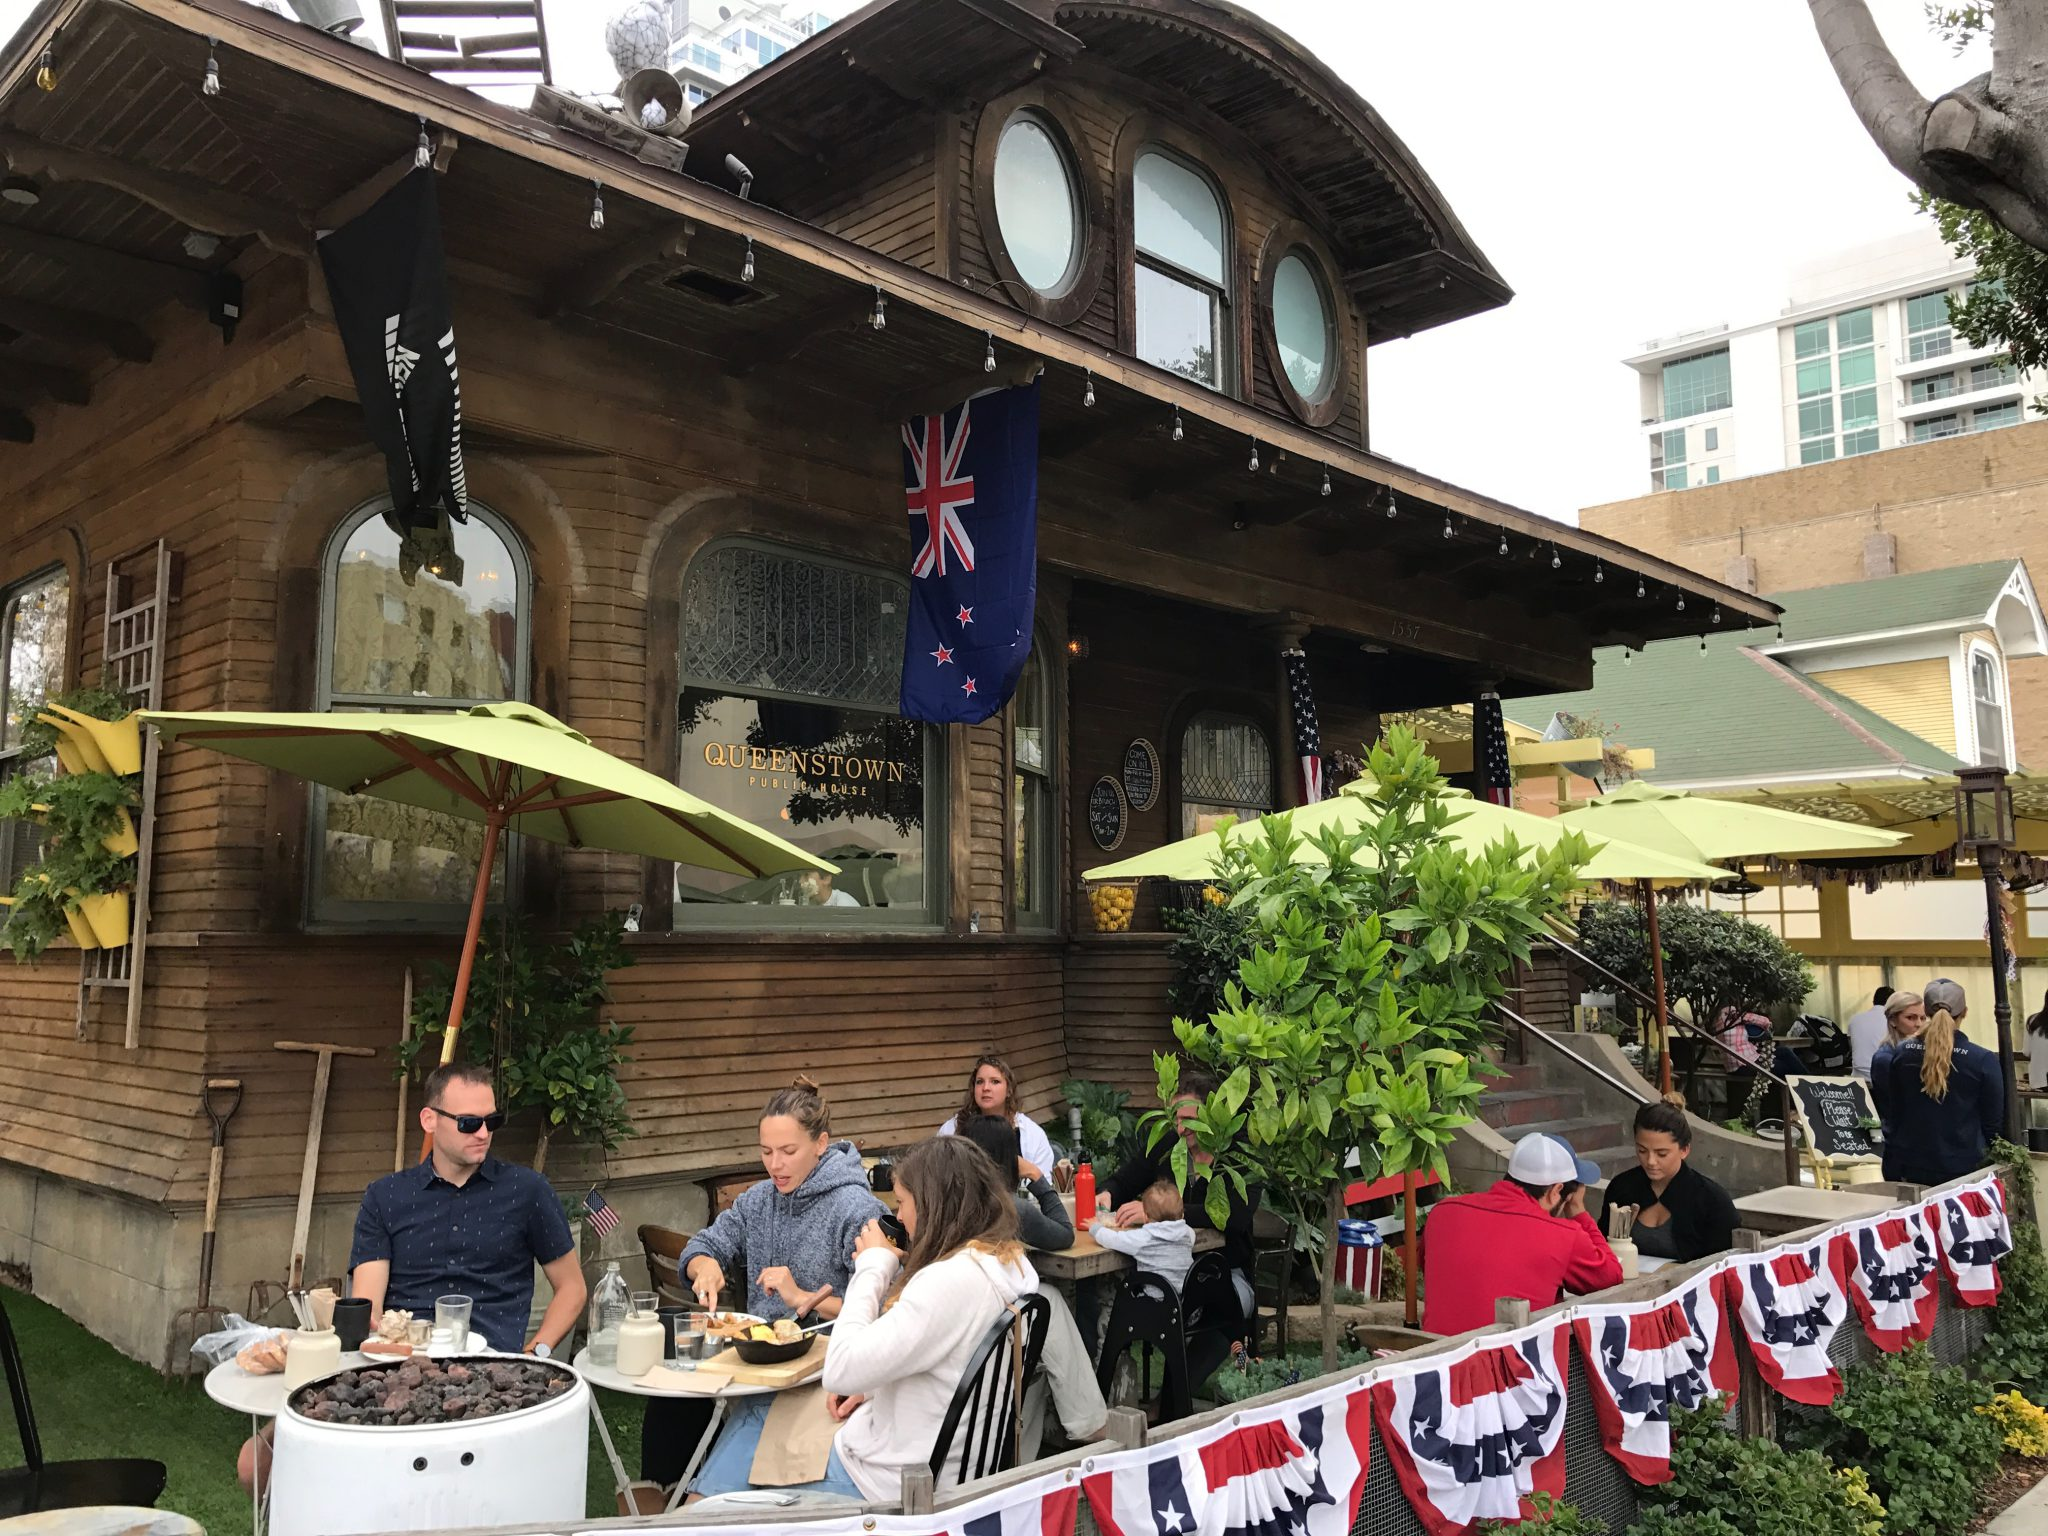 queenstown public house patio in san diego little italy